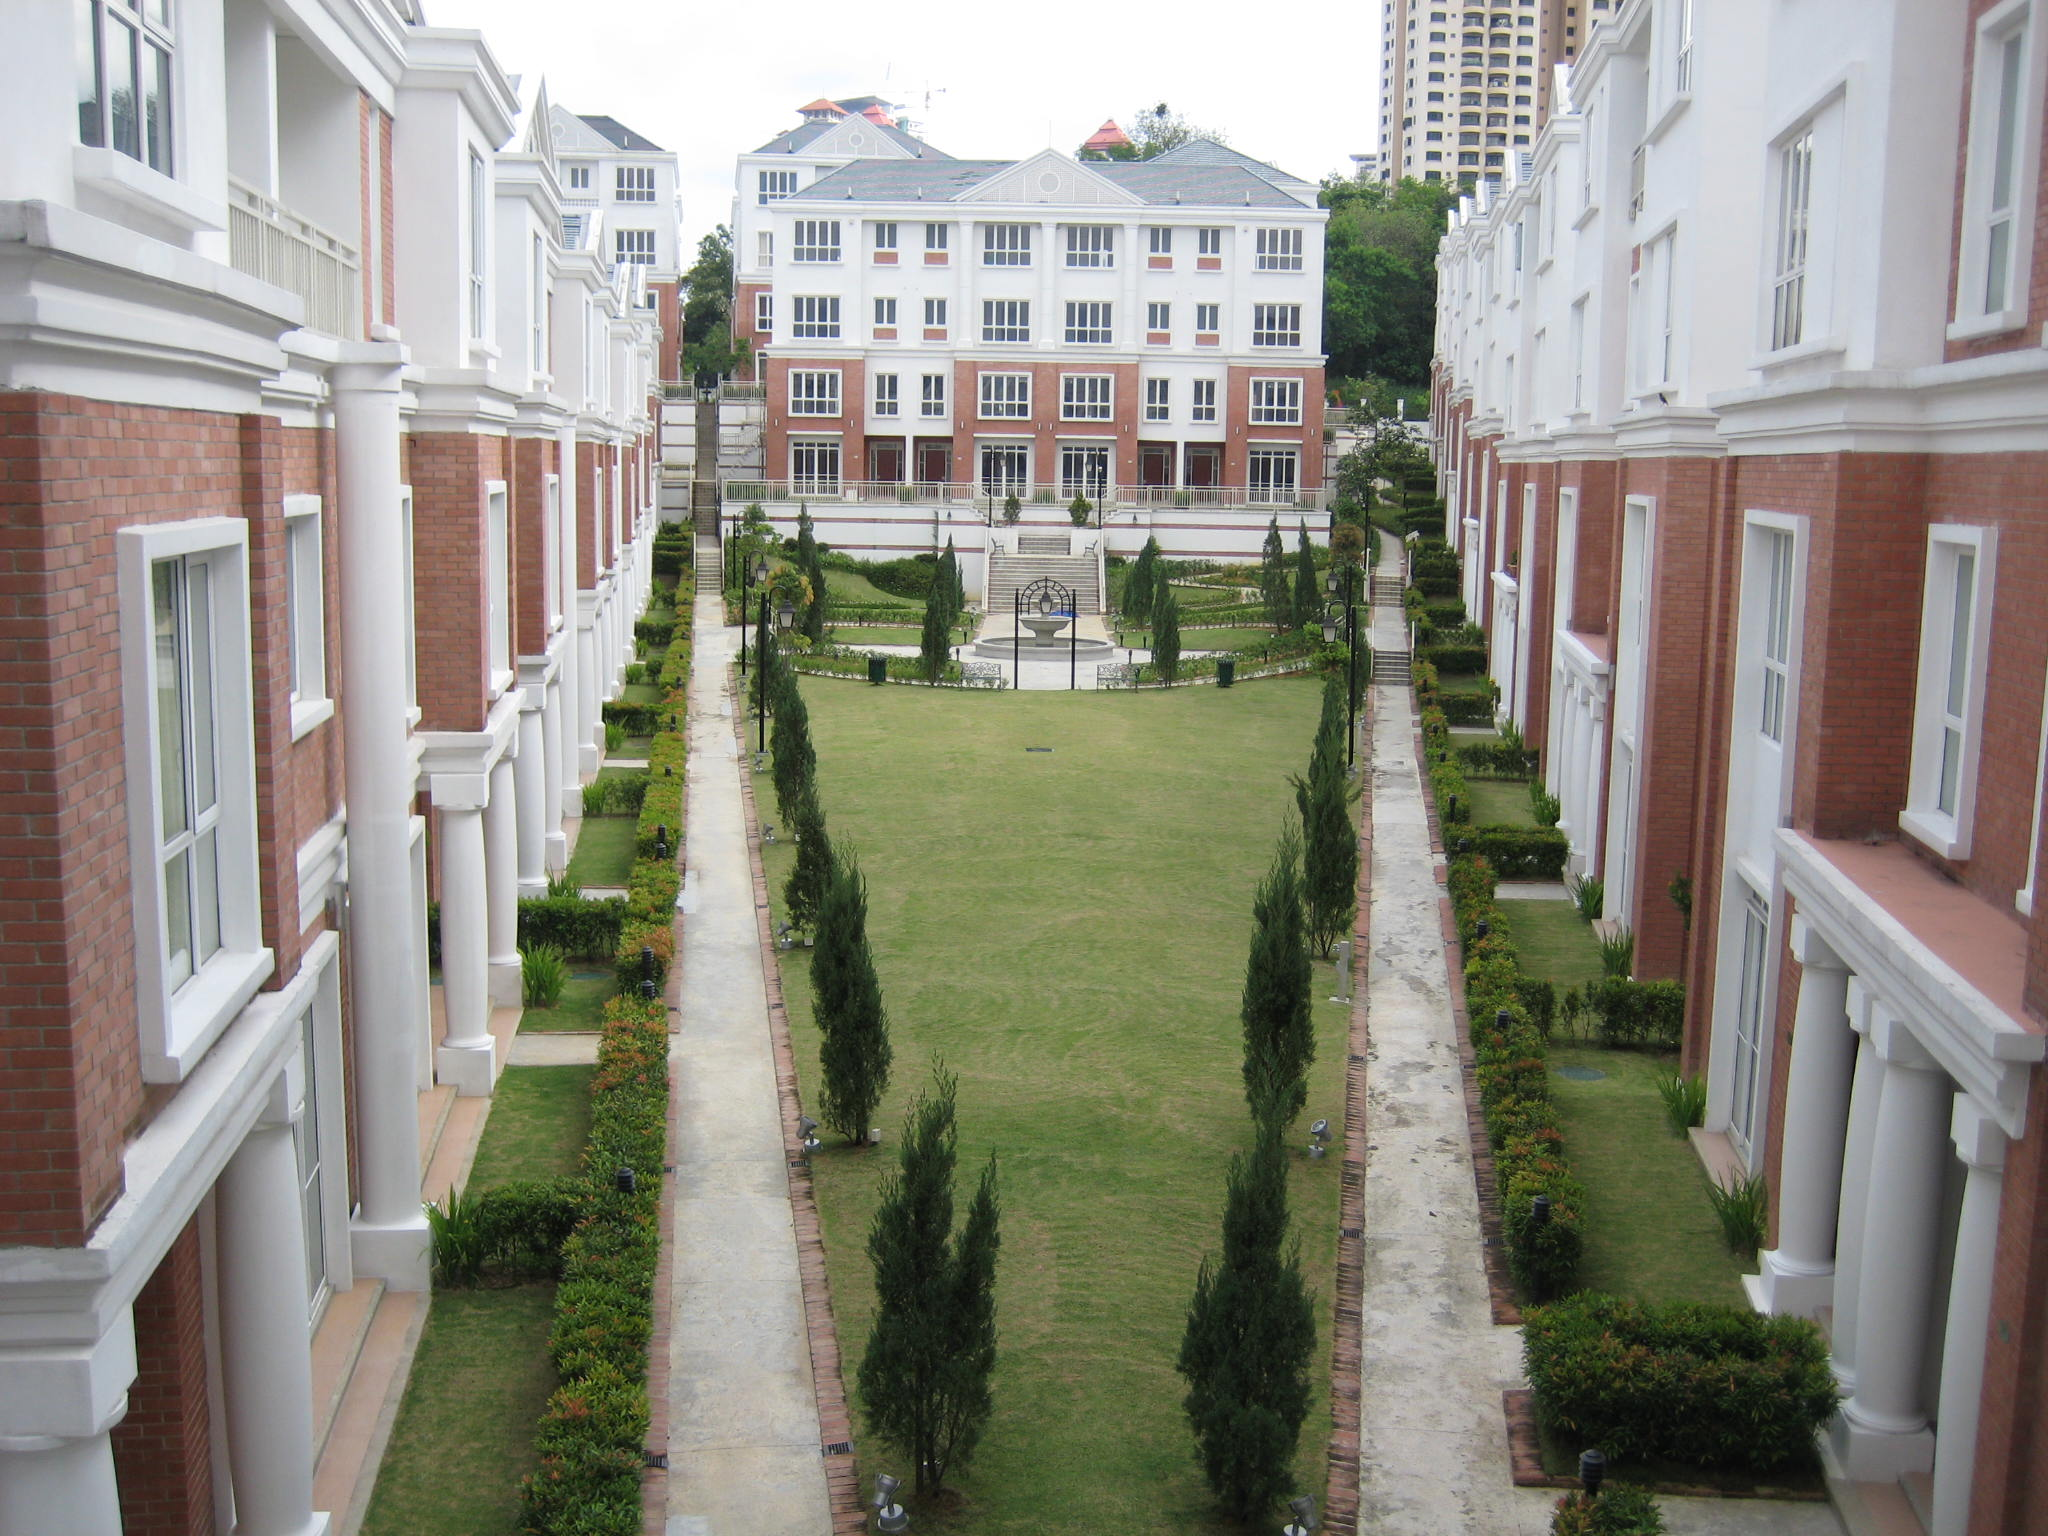 Mesra Terrace view from the Bath House.